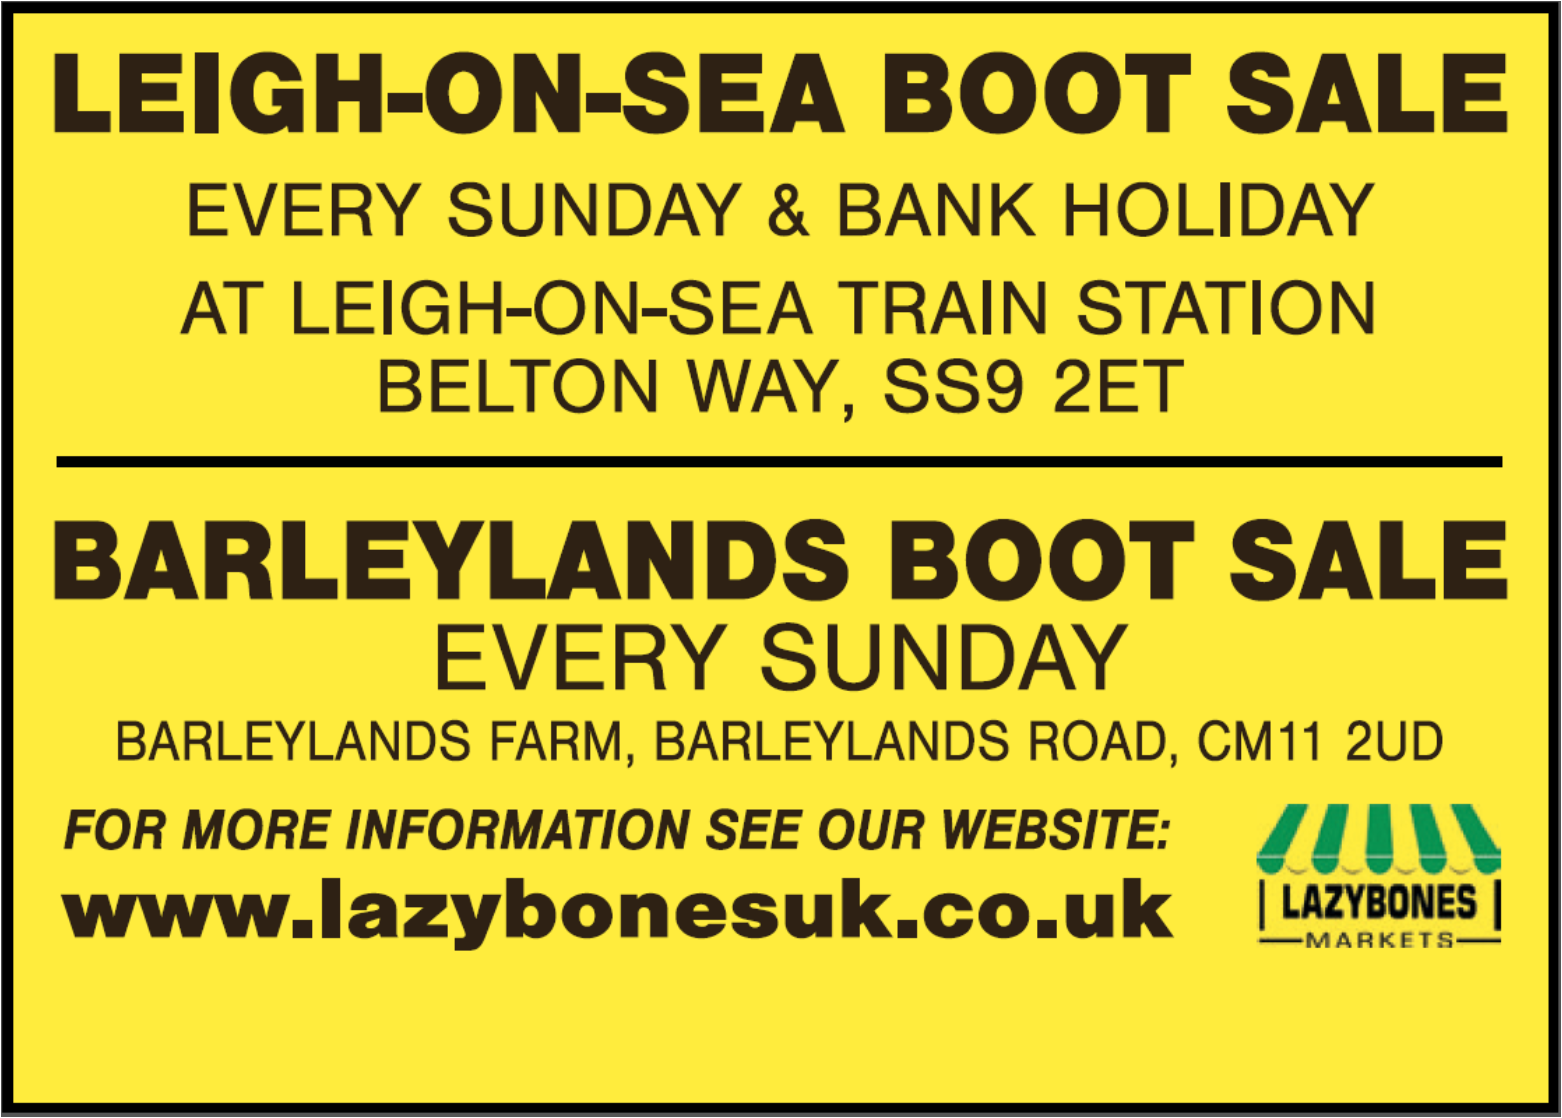 Lazybones Car Boot Sales (Barleylands & Leigh-on-Sea)